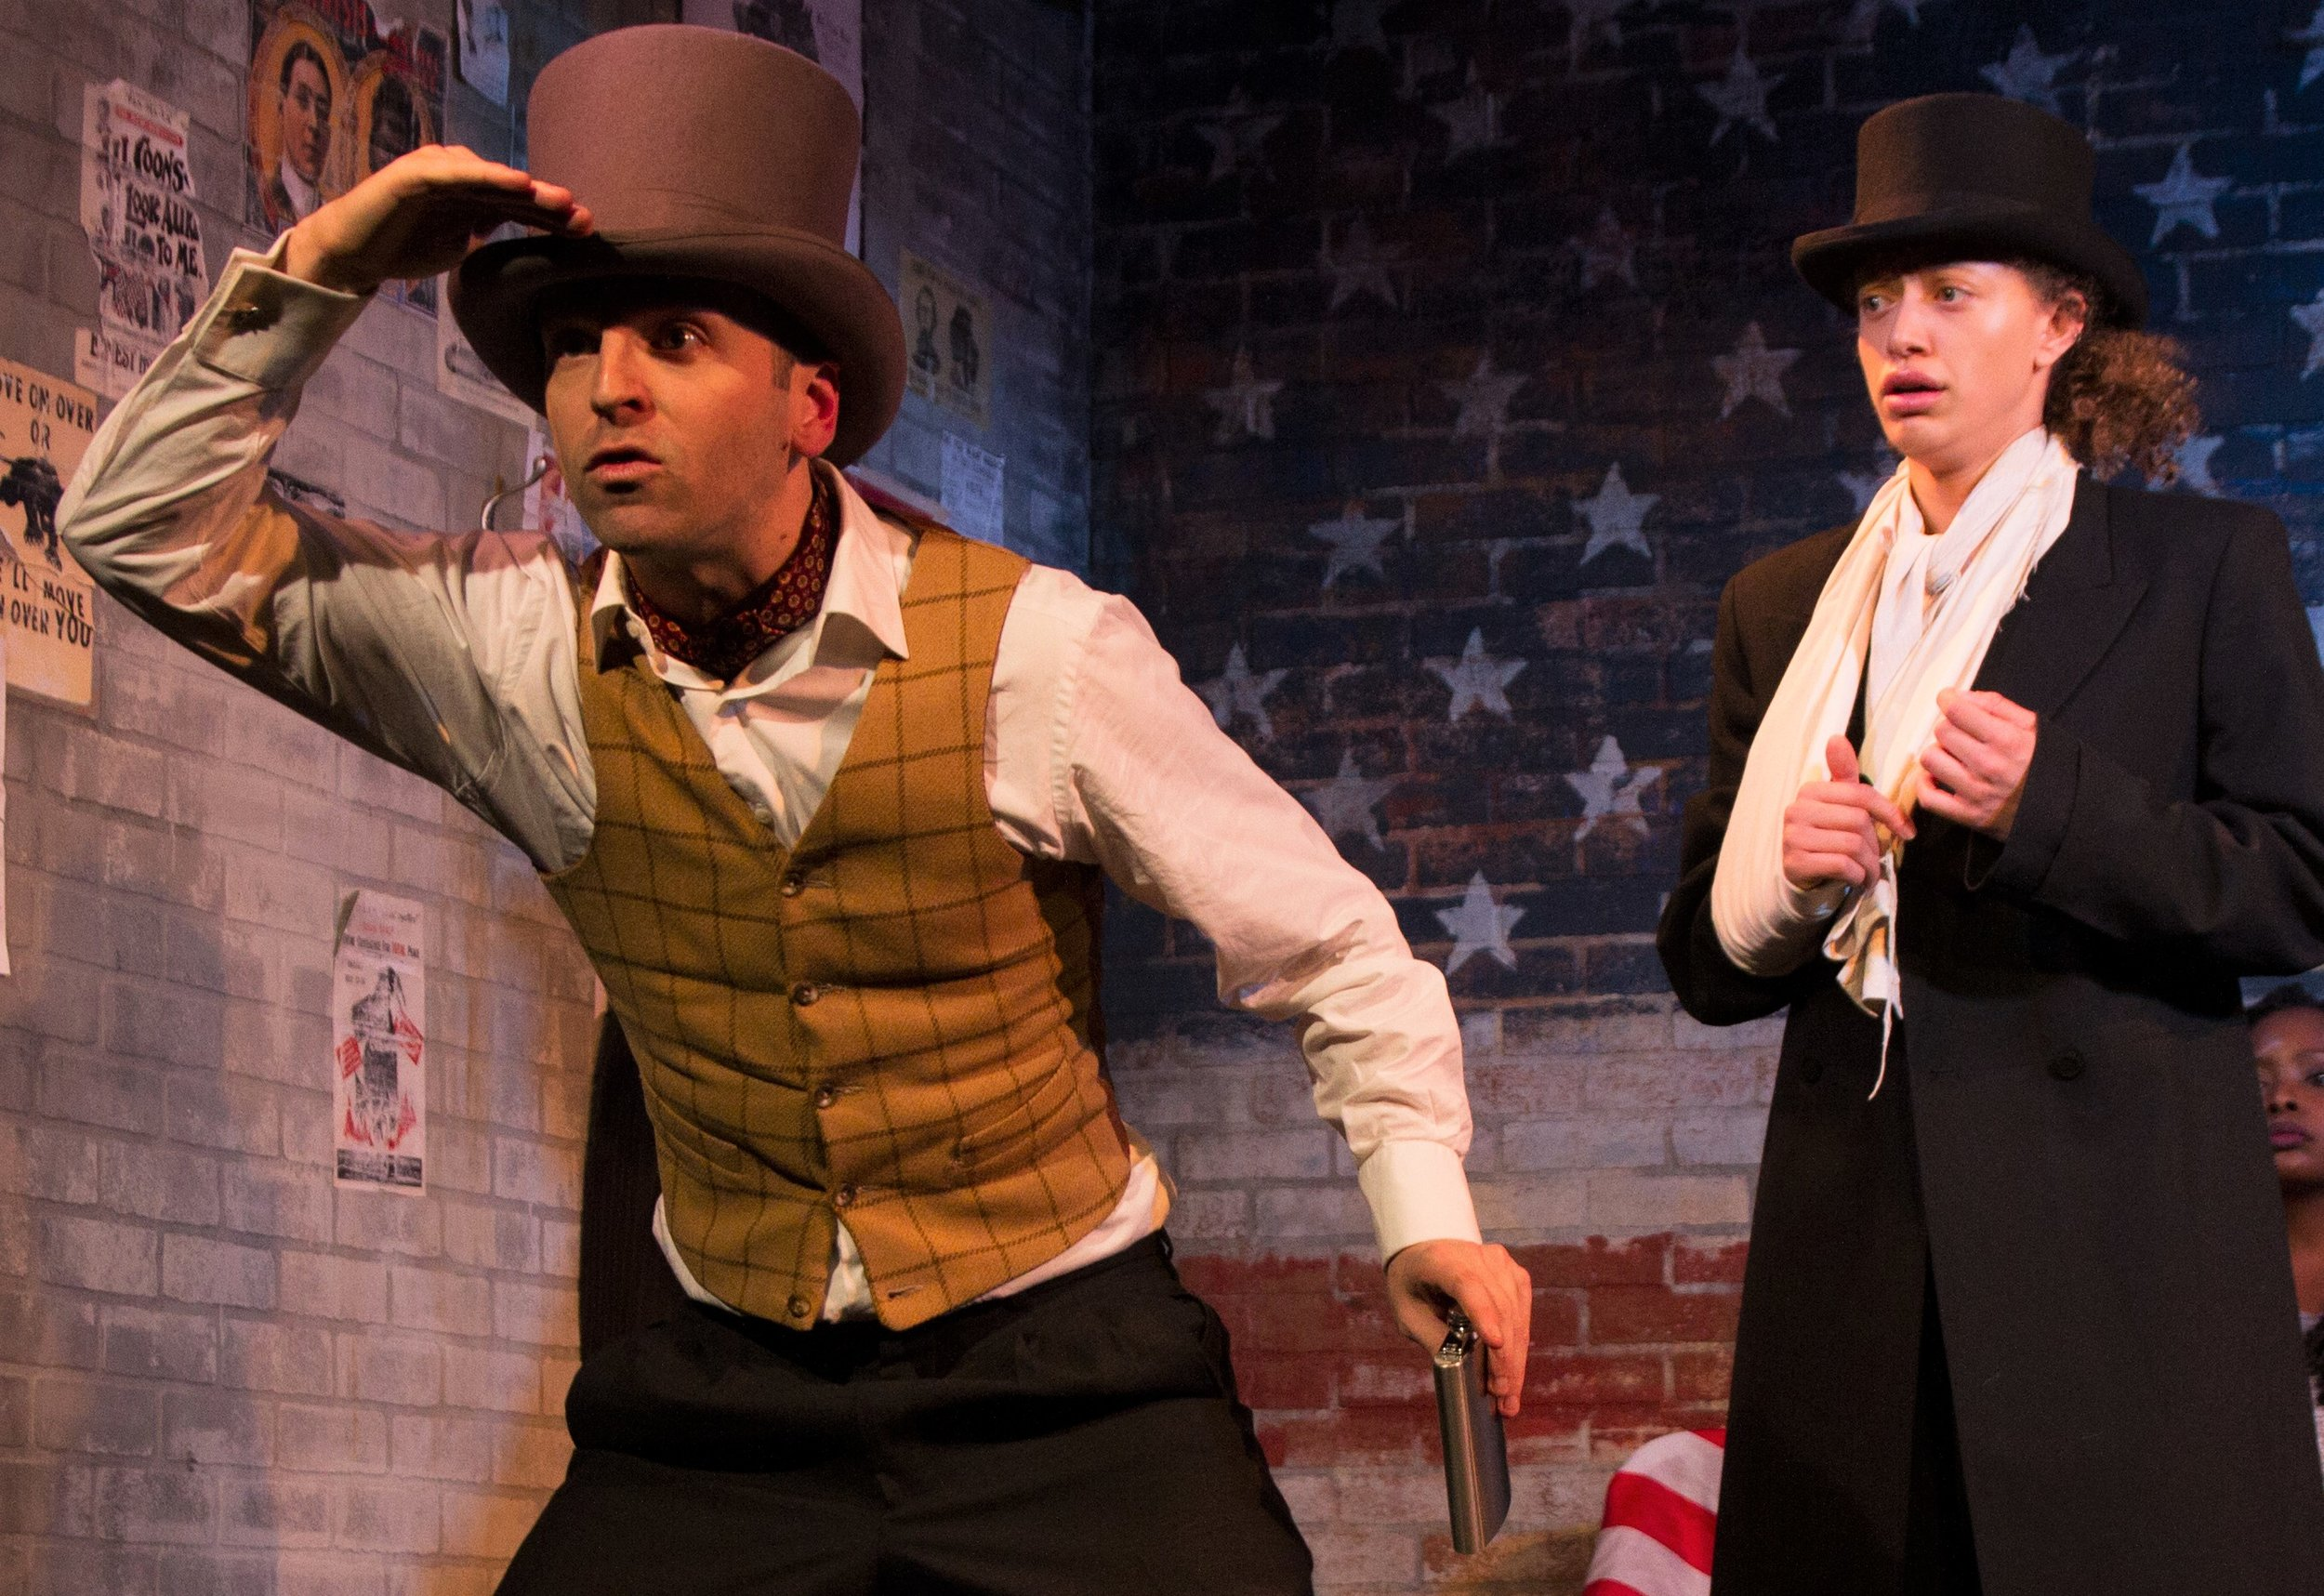 Herrald as Walsh (left) is taken in by the disguise of runaway slave Eleanor (Alexander). Photographs by Jody Christopherson.